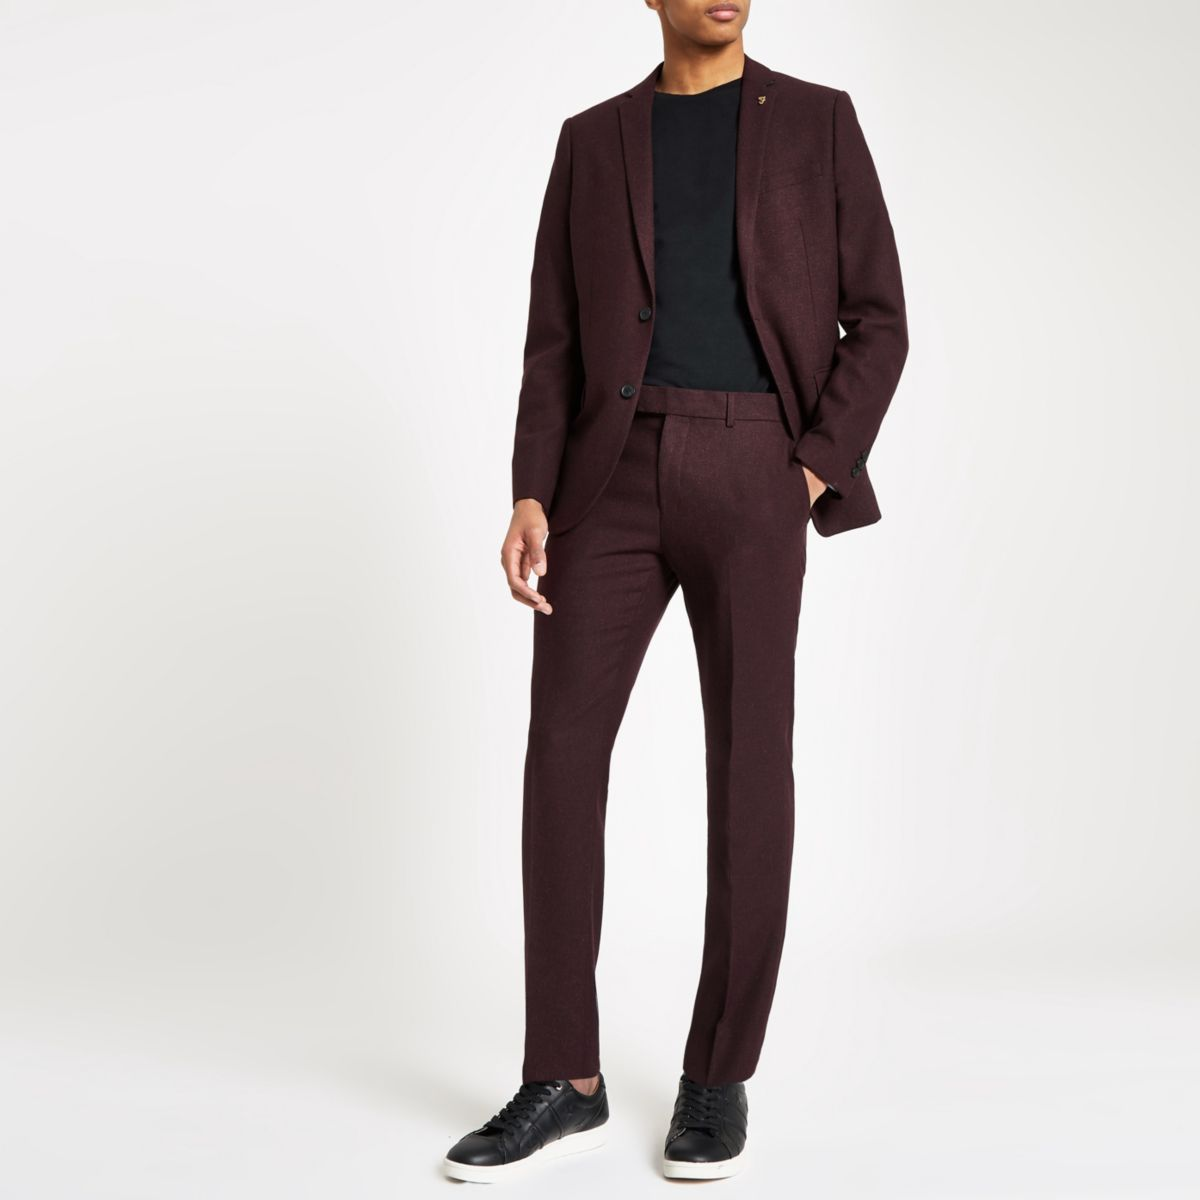 Farah burgundy suit trousers